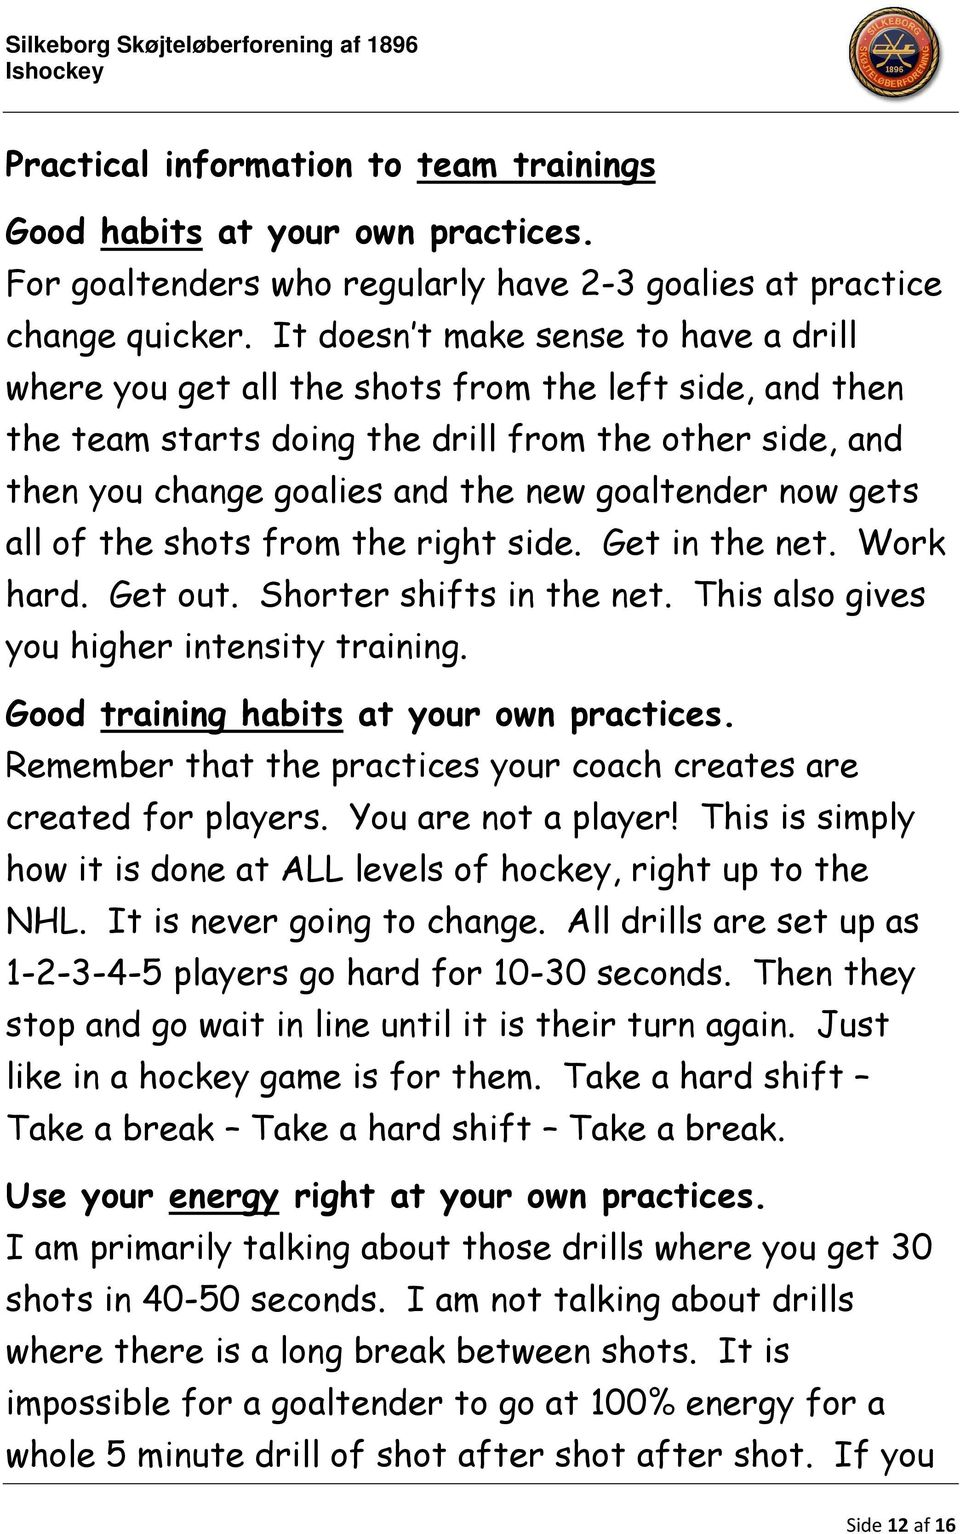 now gets all of the shots from the right side. Get in the net. Work hard. Get out. Shorter shifts in the net. This also gives you higher intensity training. Good training habits at your own practices.